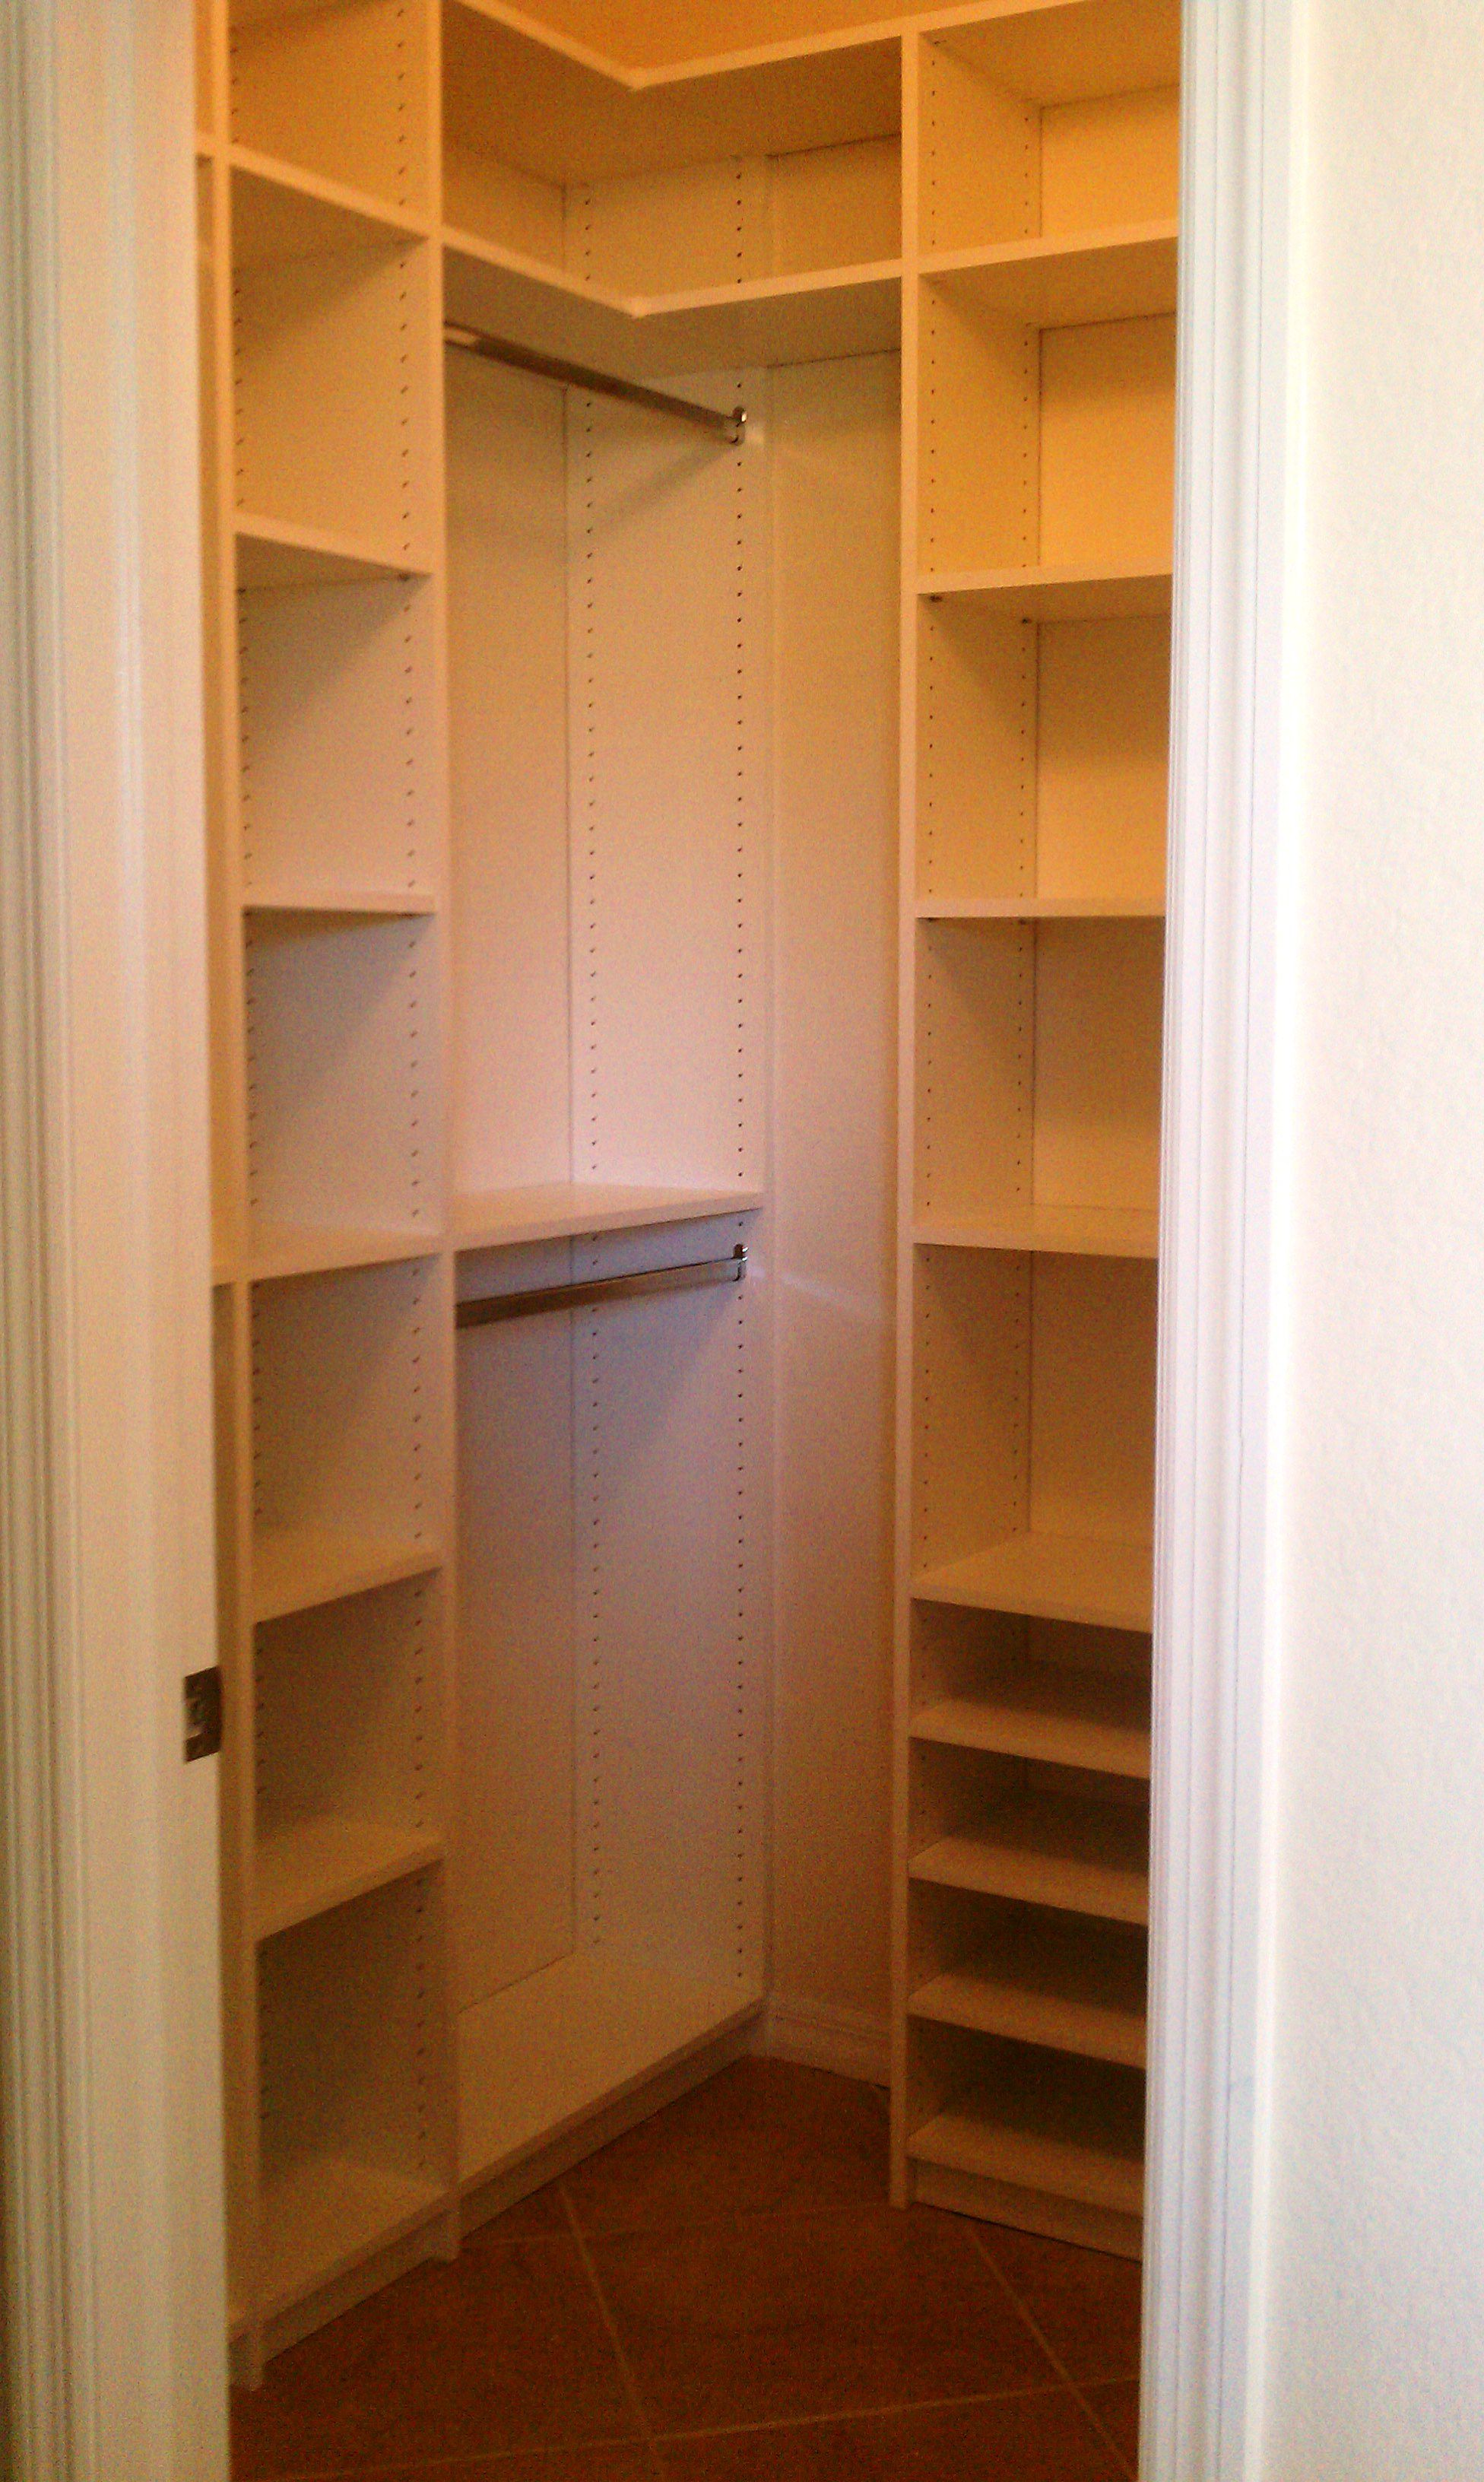 Stunning small closet organization ideas midcityeast for Walk in closets designs ideas